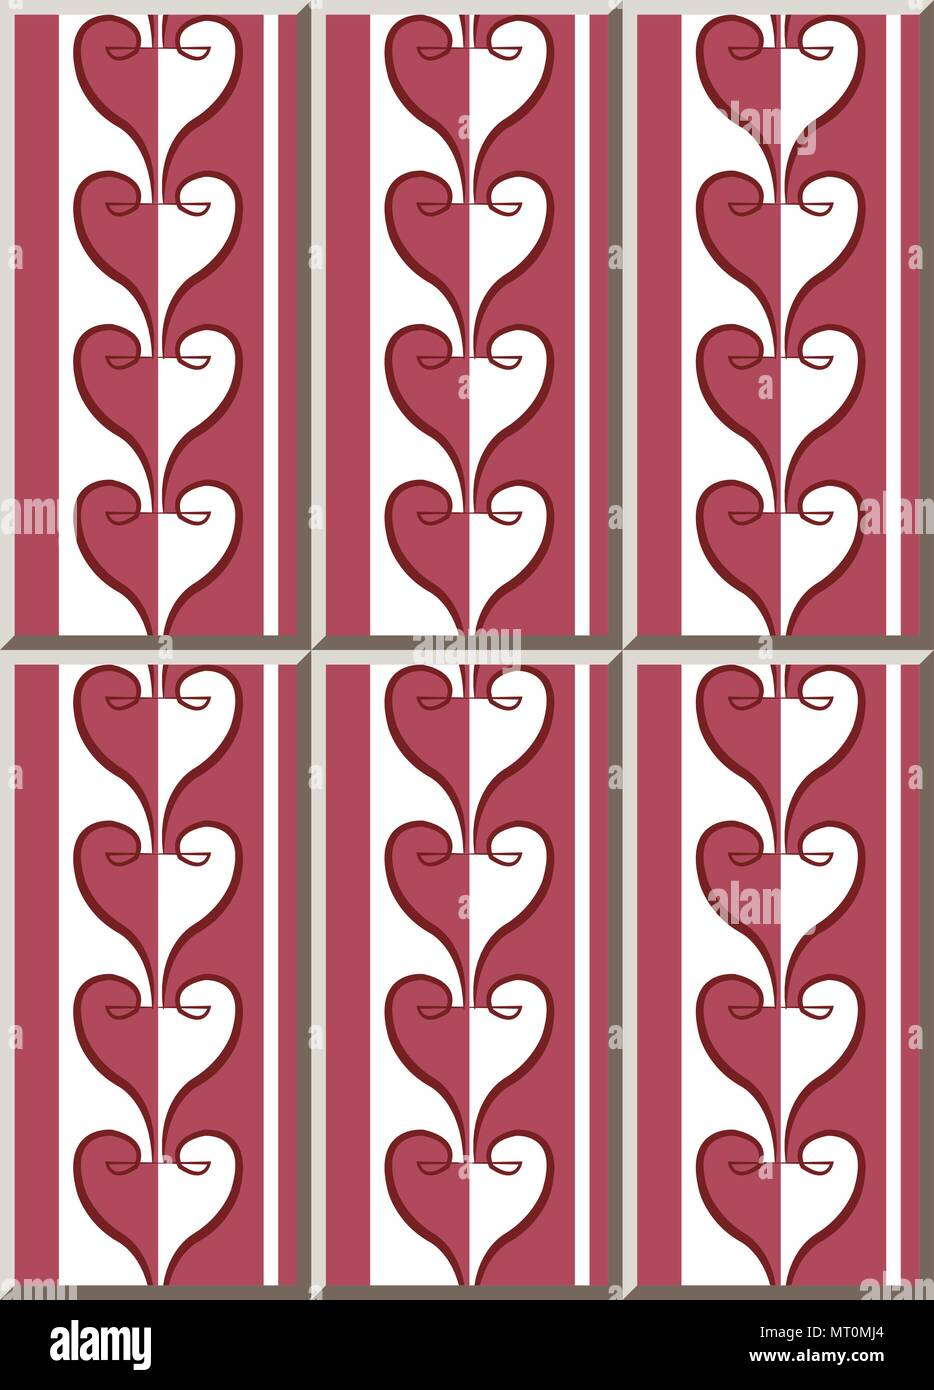 Ceramic Tile Pattern Red Love Spiral Curve Cross Heart Line Oriental Interior Floor Wall Ornament Elegant Stylish Design Stock Vector Image Art Alamy